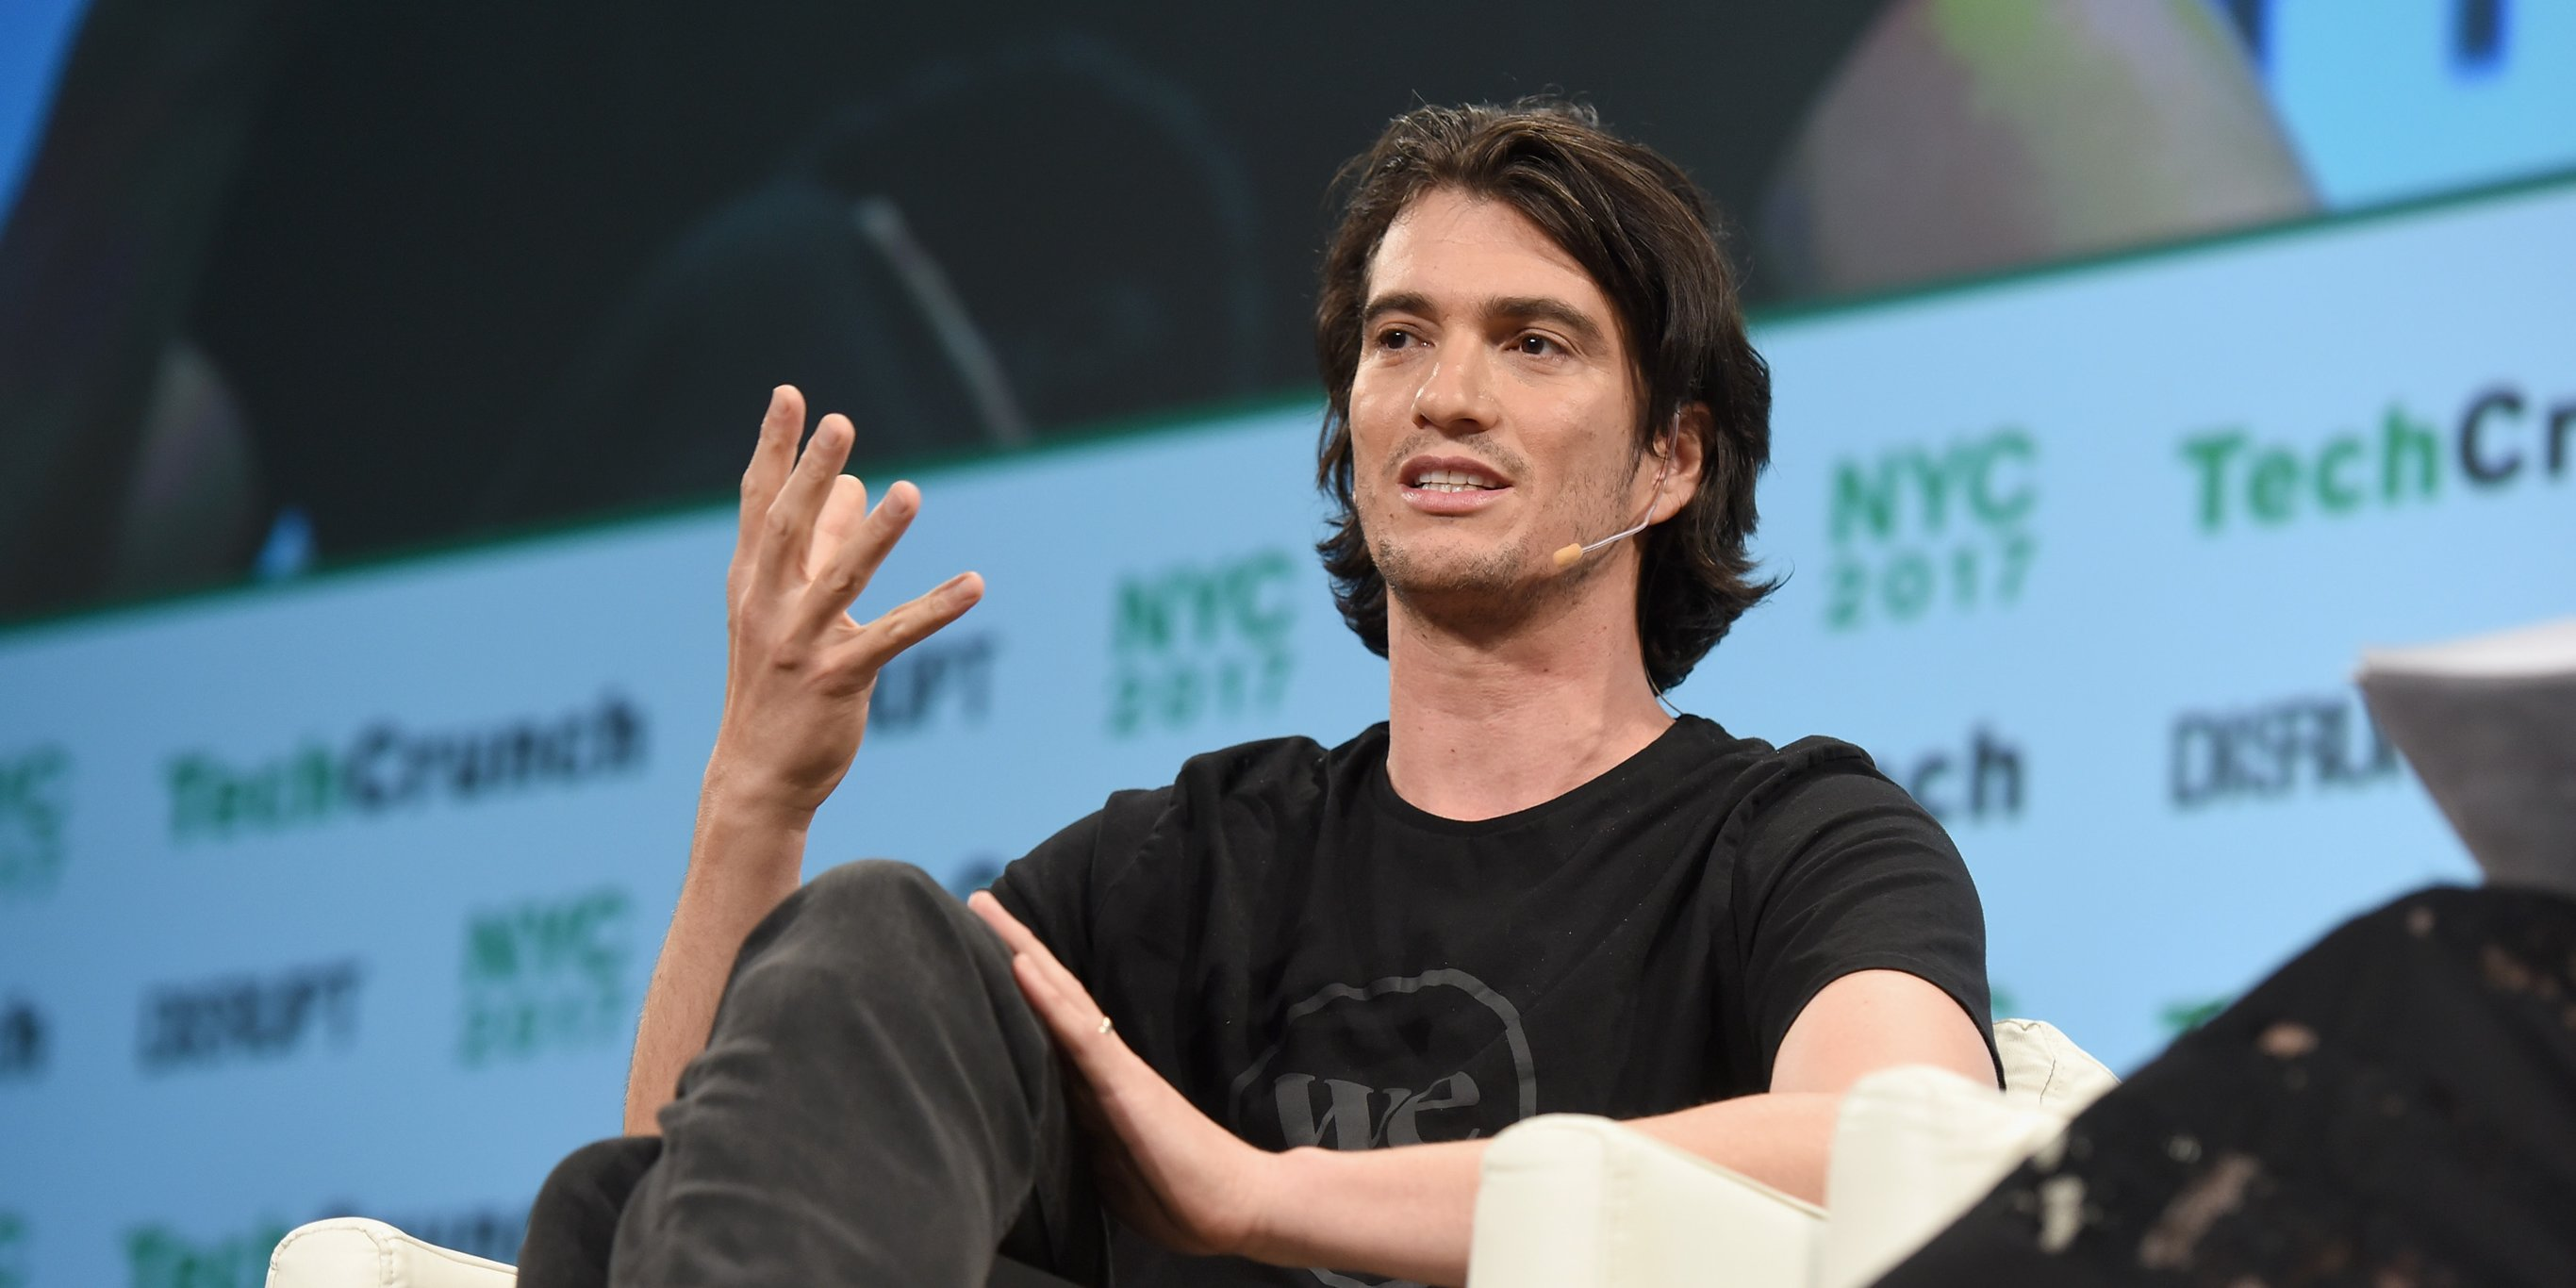 After WeWork banned employees from expensing meat, Adam Neumann was spotted eating a giant lamb shank at a company dinner